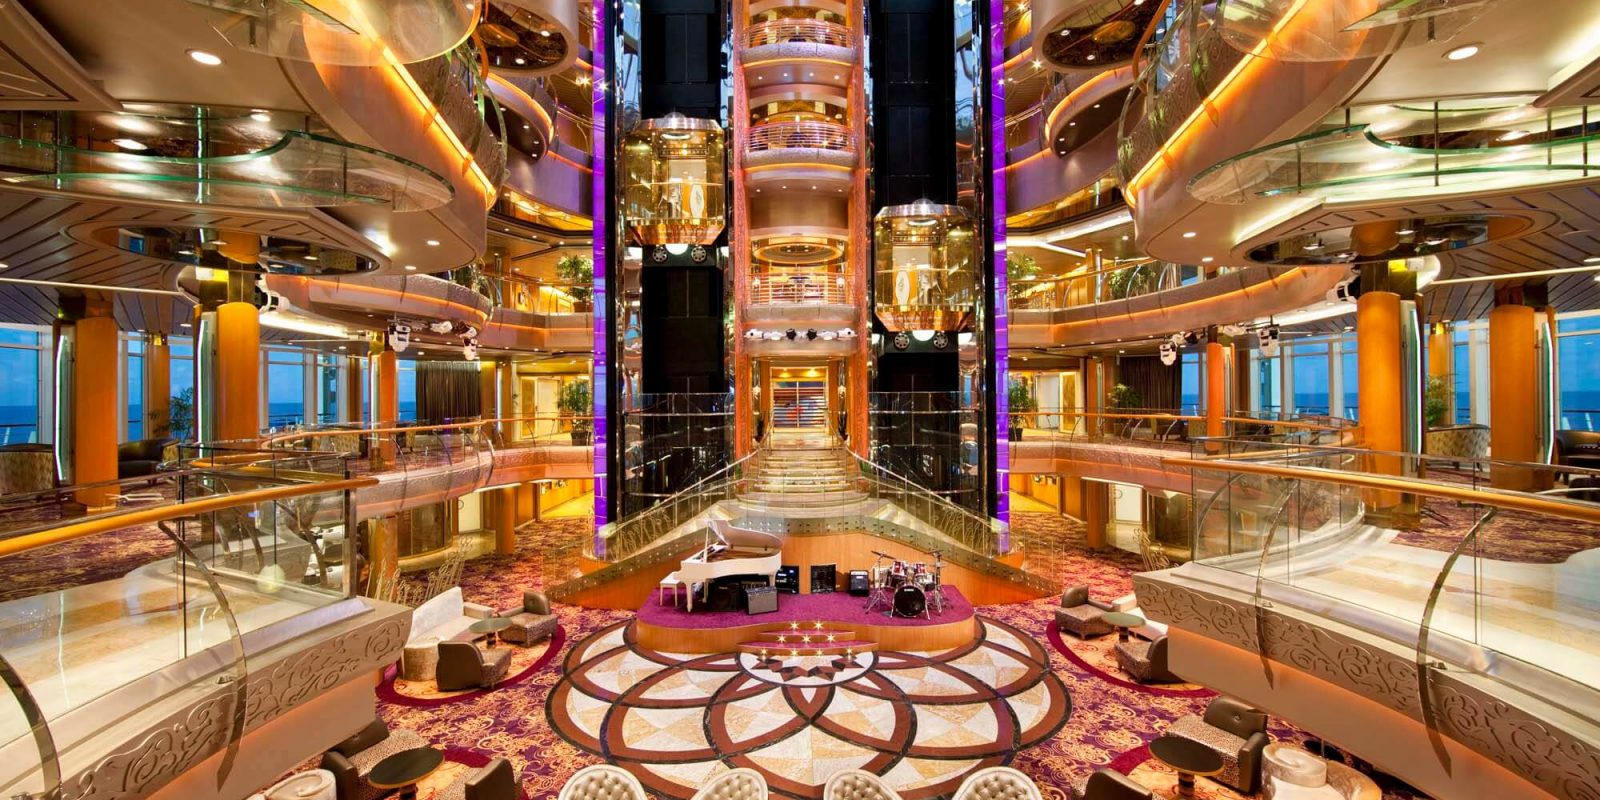 CRUCEROS ROYAL CARIBBEAN CRUCEROS RADIANCE CLASS CRUCEROS BRILLIANCE OF THE SEAS CRUCEROS RADIANCE OF THE SEAS CRUCEROS SERENADE OF THE SEAS CRUCEROS JEWEL OF THE SEAS CRUCEROS EN BARCO MEDIANDO CRUCEROS POCOS PASAJEROS CRUCEROS FAMILIAS CRUCEROS SINGLES CRUCEROS PASAJERO INDIVIDUAL #Cruceros #RoyalCaribbean #Brillianceoftheseas #Radianceoftheseas #jeweloftheseas #serenadeoftheseas #royalcaribbeancruises #familycruises